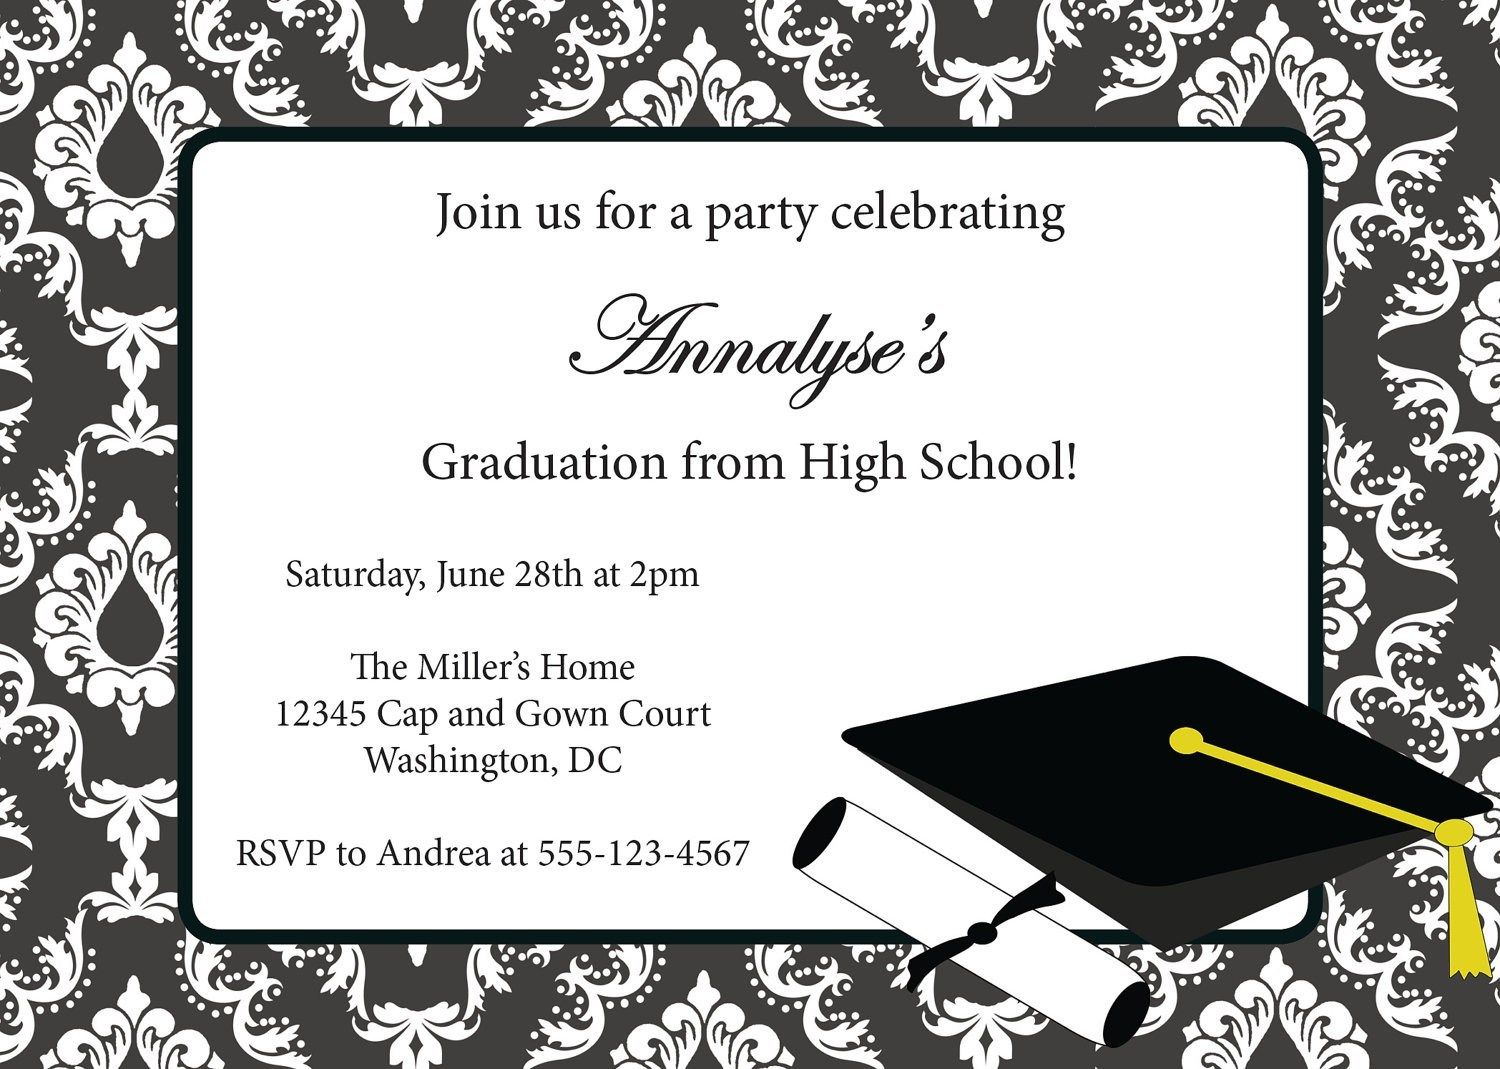 Free download college graduation announcements printable free download college graduation announcements printable invitations free graduation maxwellsz